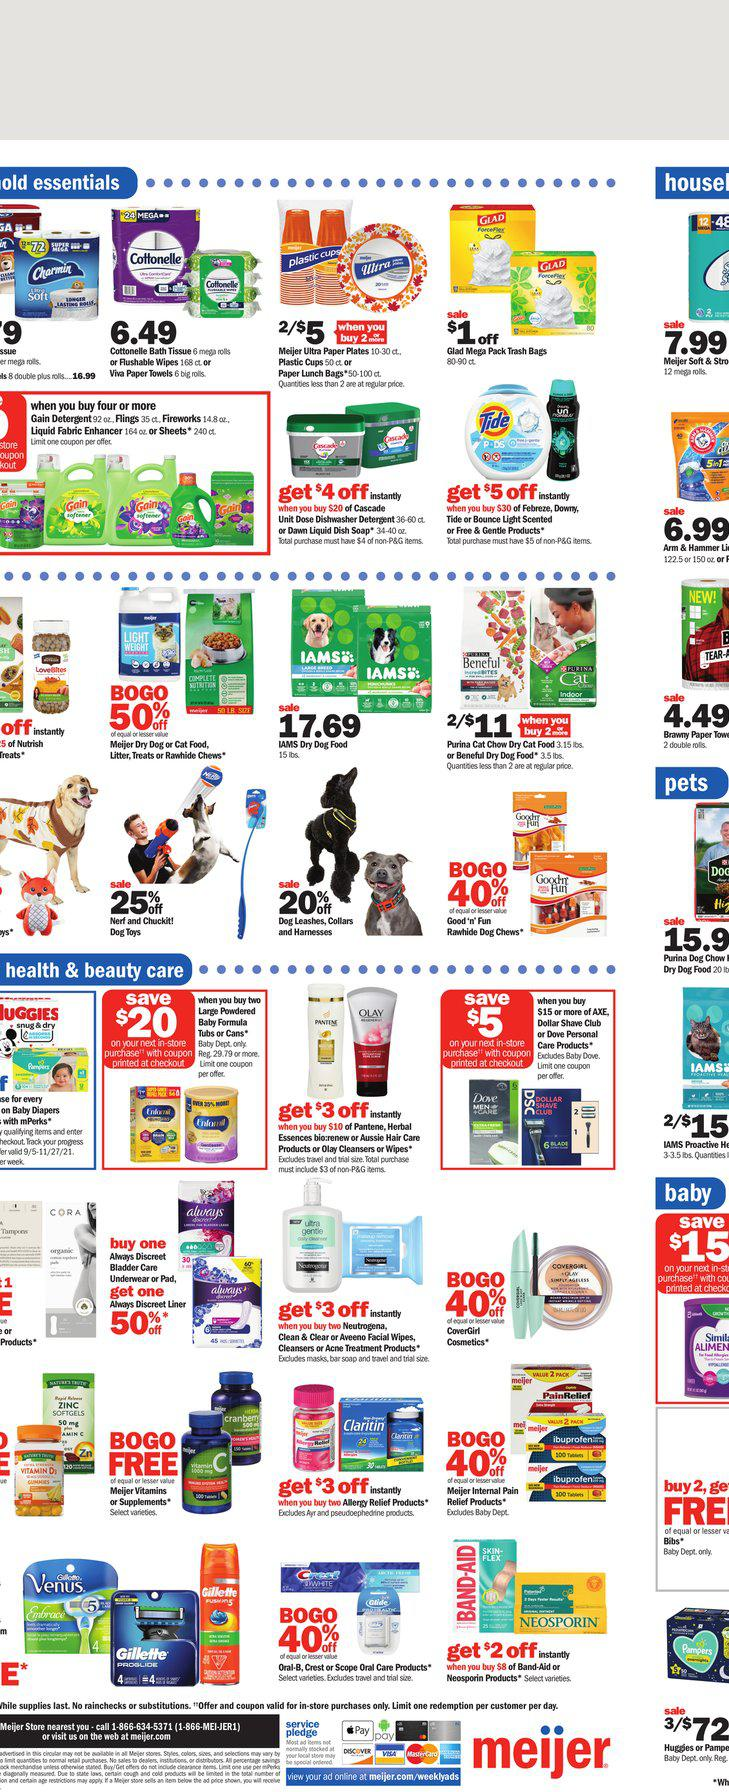 12.09.2021 Meijer ad 14. page